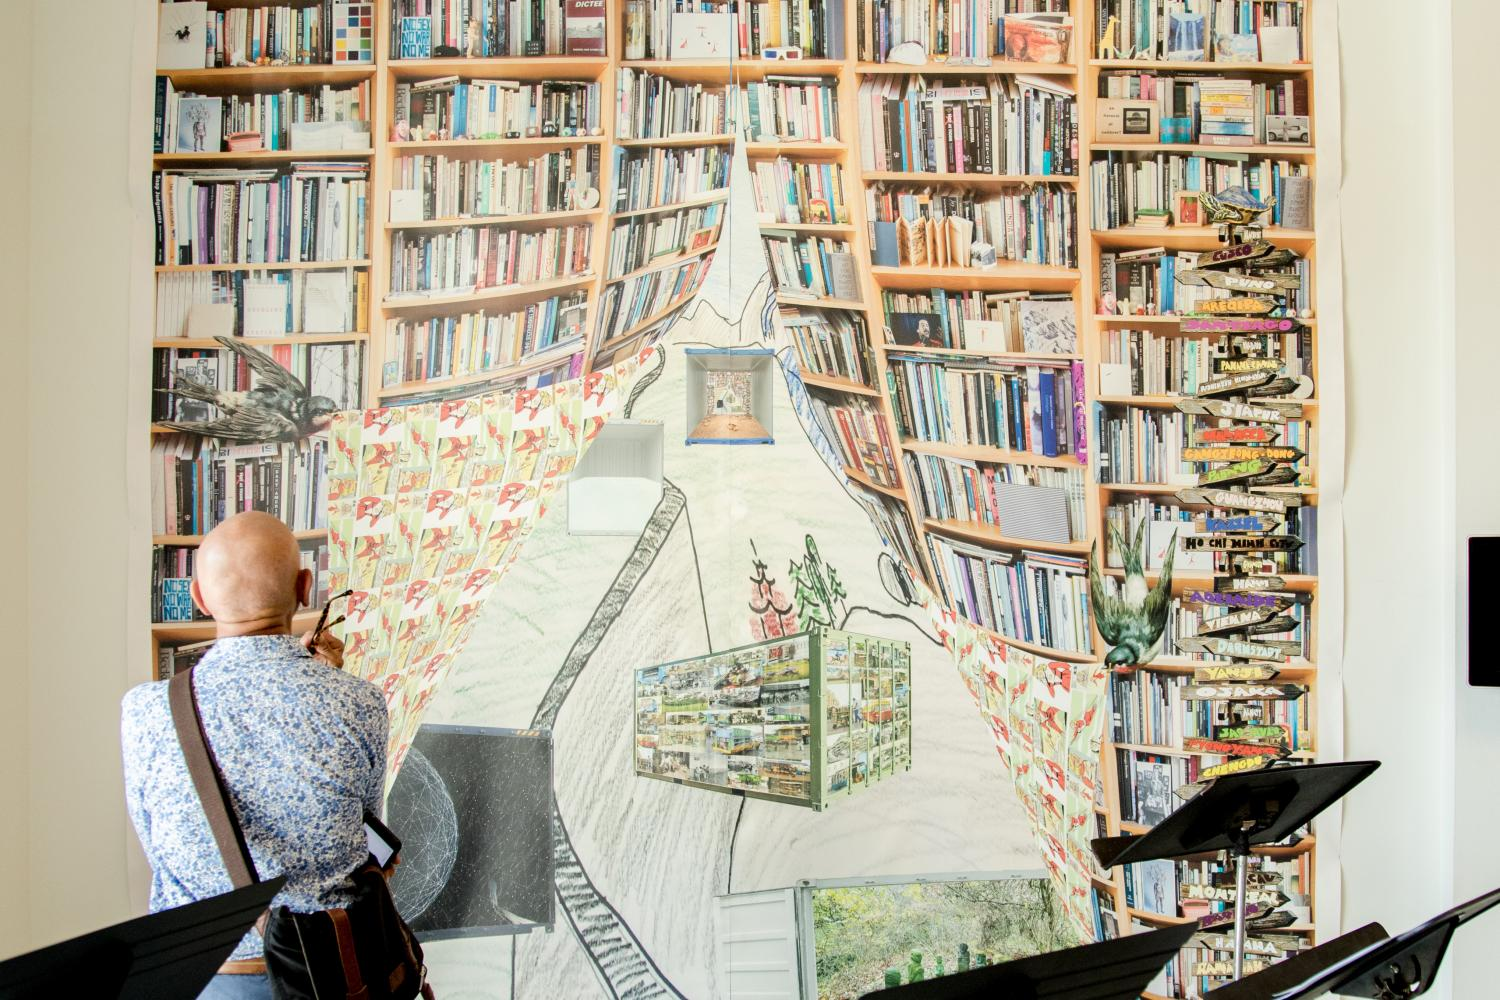 Man looks at a painting of bookshelves illustrated as a drawn curtains revealing a garden